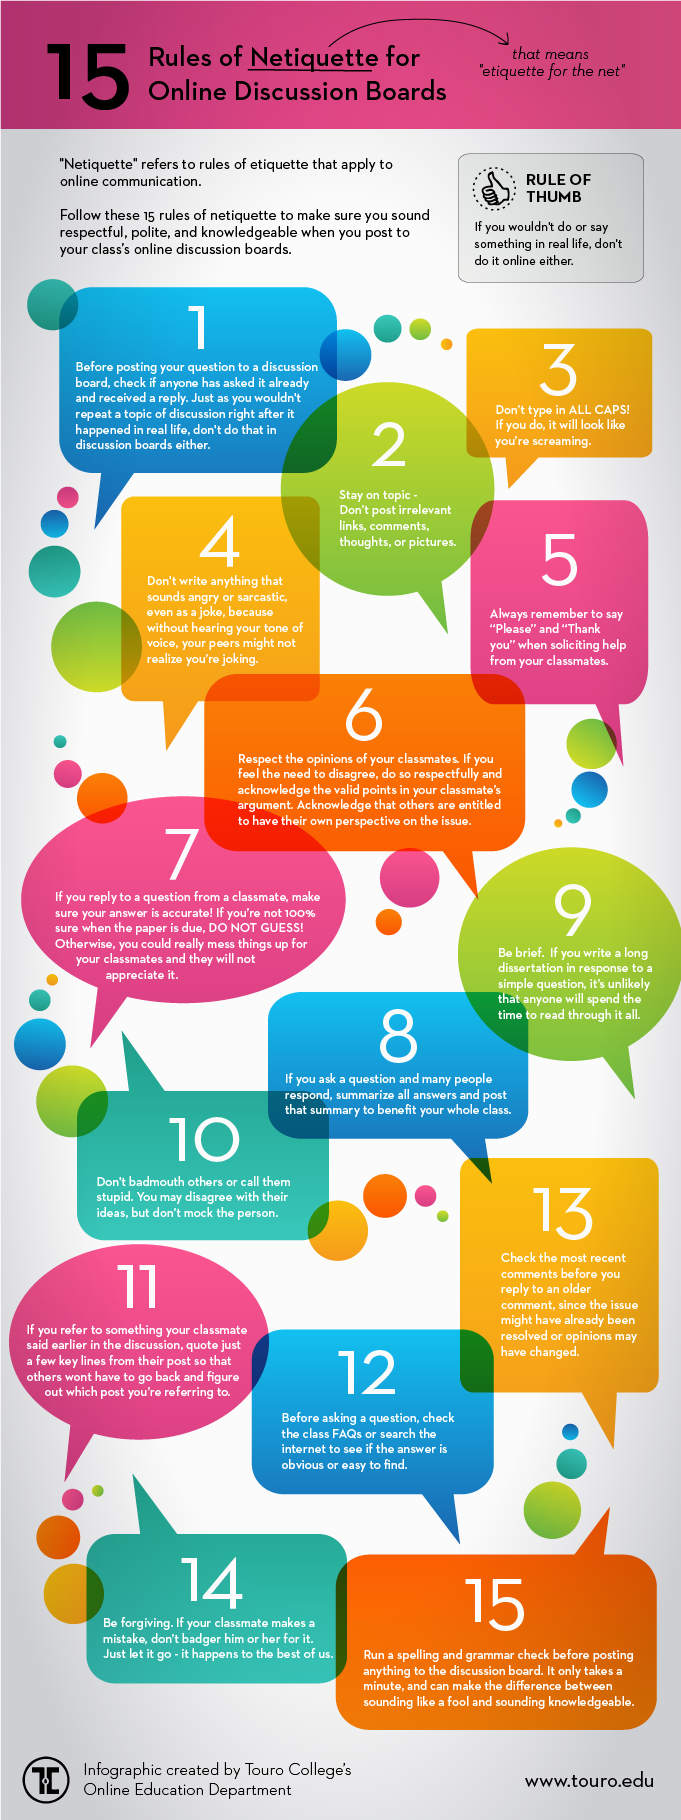 Netiquette from the Online Education Blog of Touro College